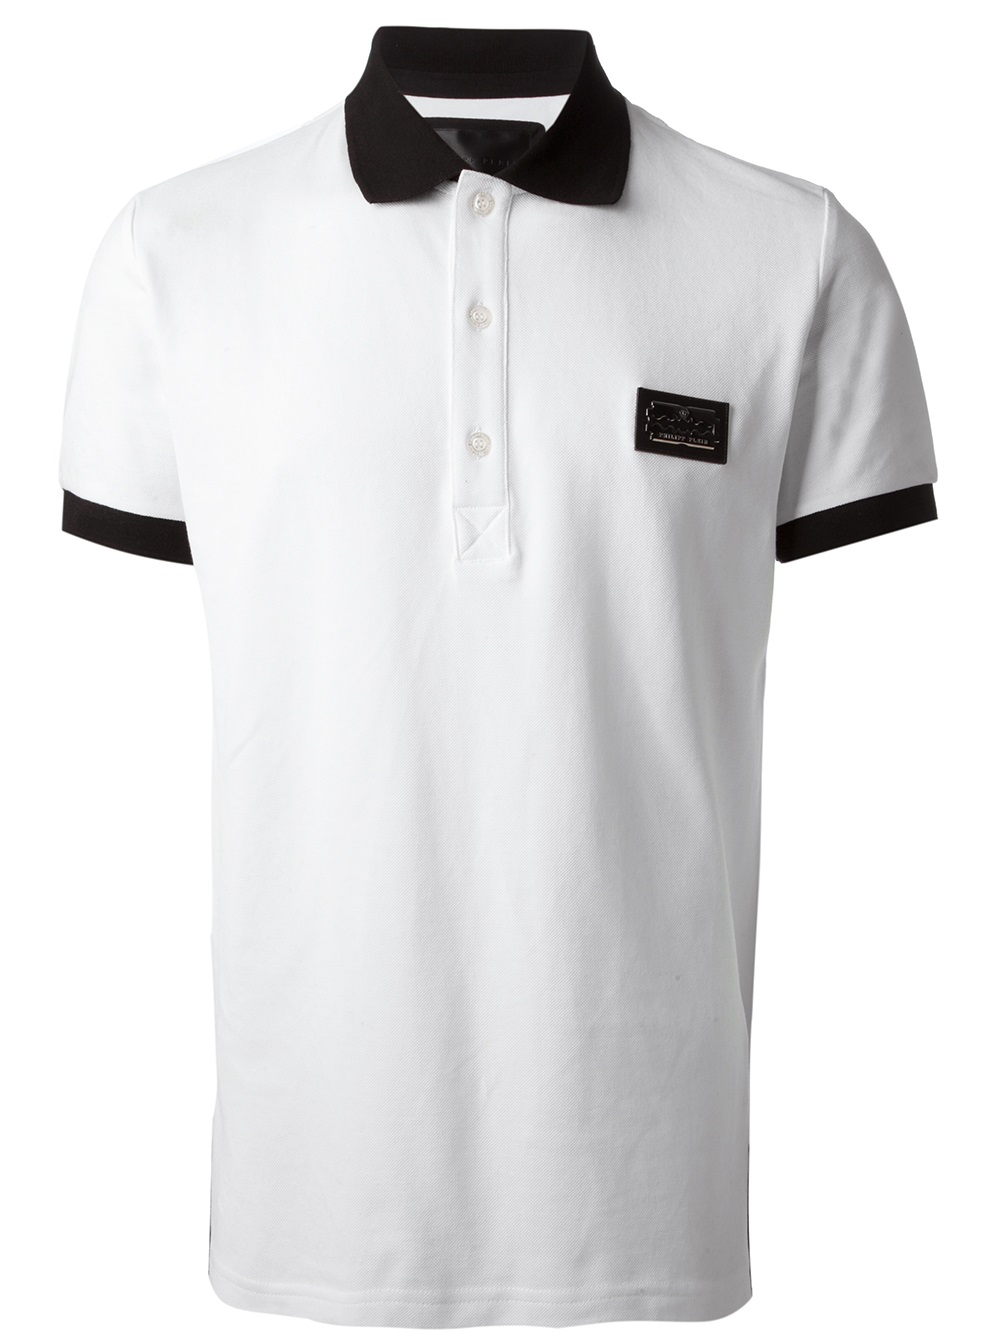 Low Shipping Fee Online logo short-sleeve polo top - Grey Philipp Plein Recommend Discount The Cheapest Cheap Price xeCfMJSij